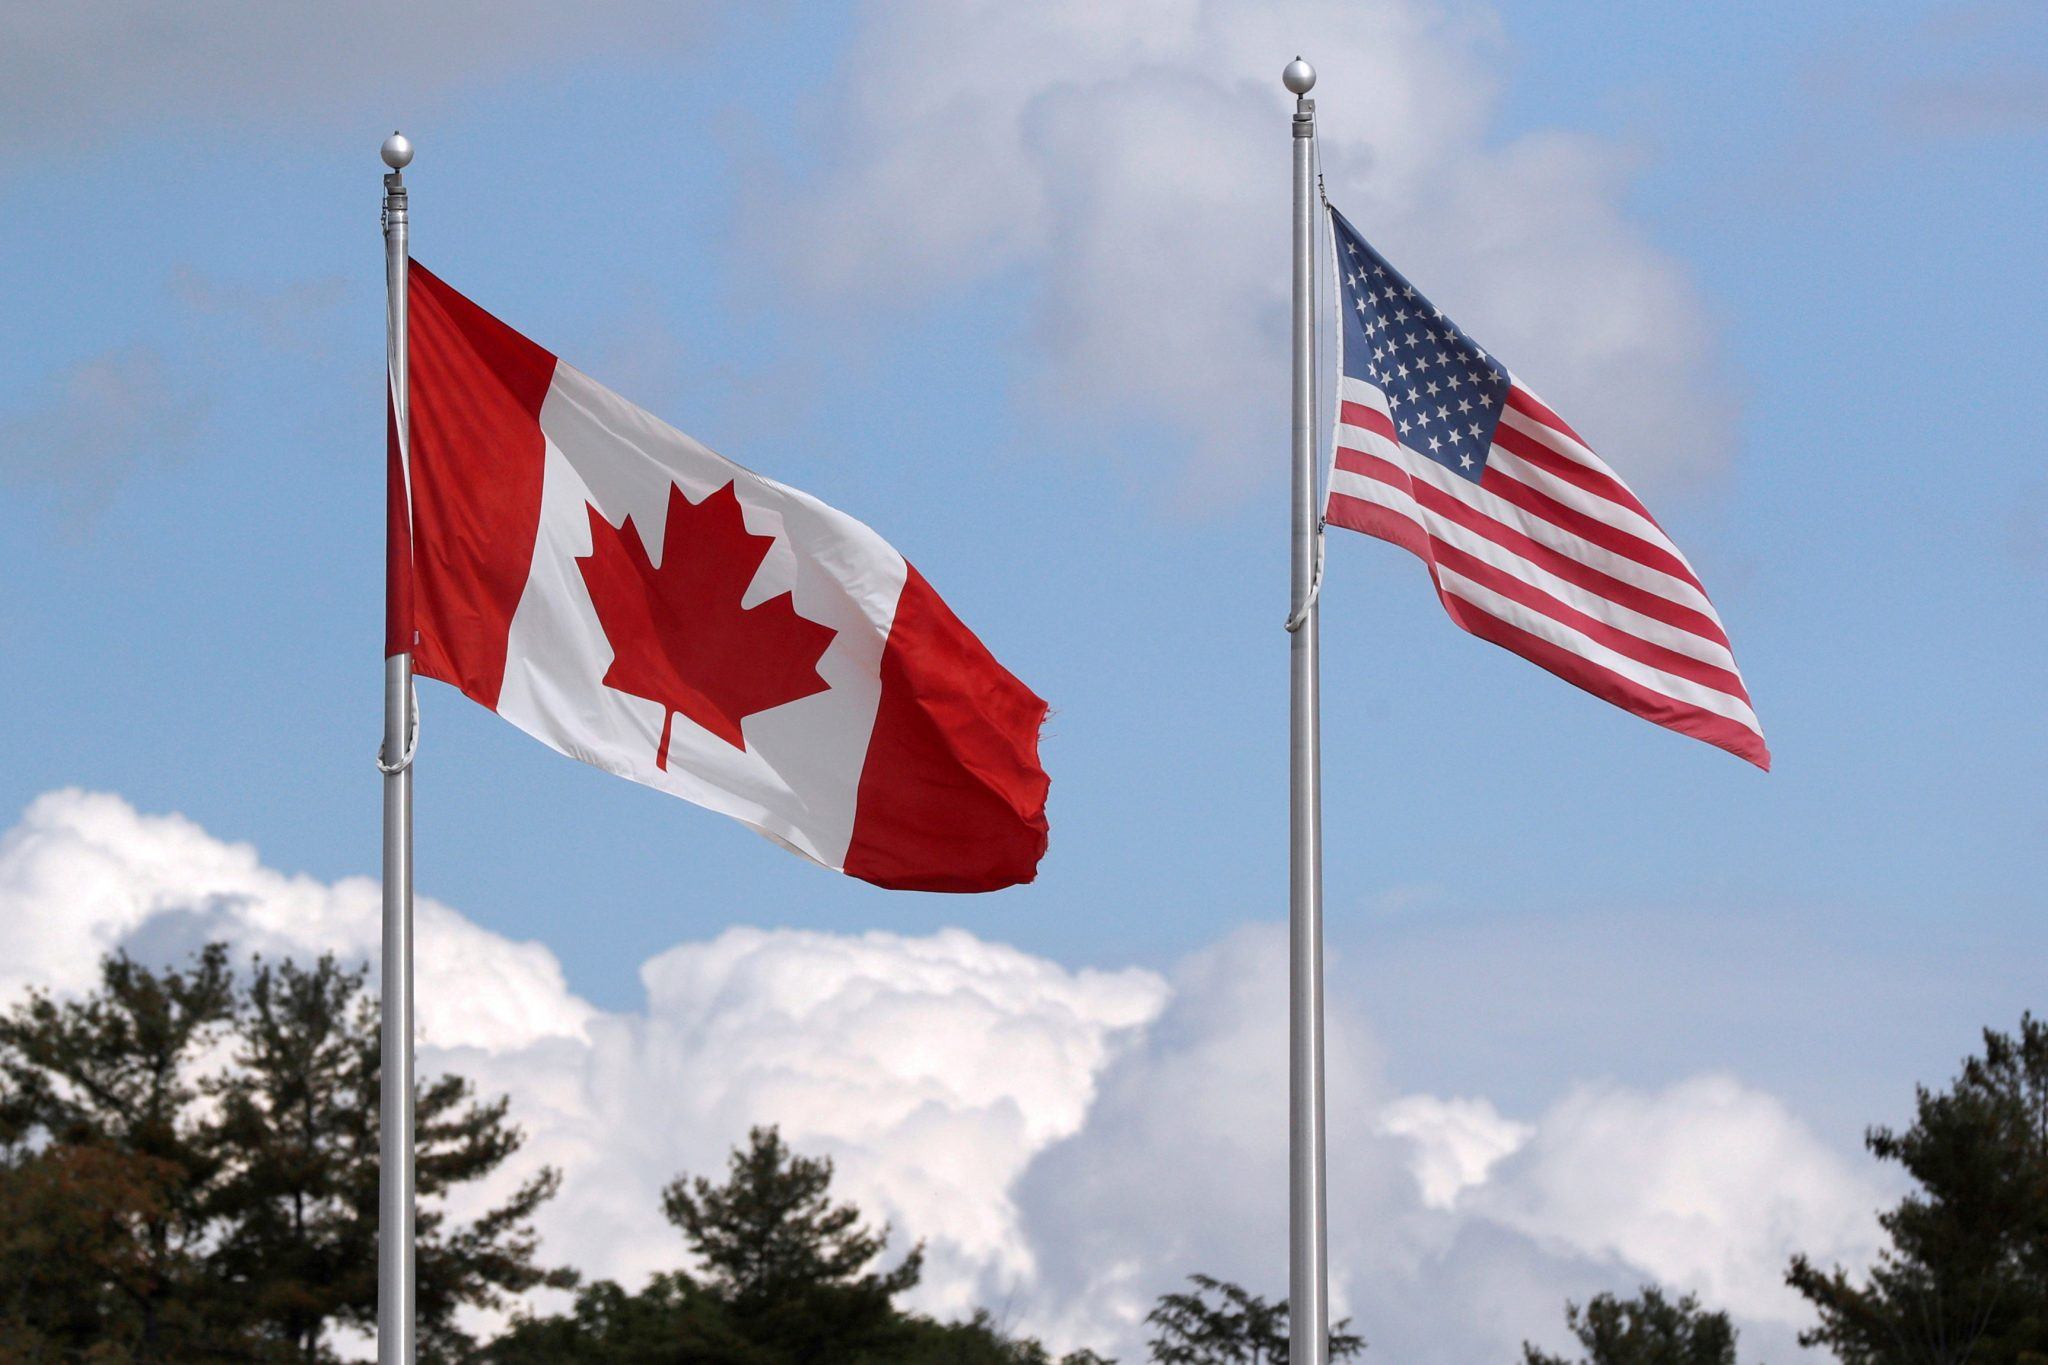 RE-OPENING OF THE US-CANADA BORDER MAY BE POSTPONED